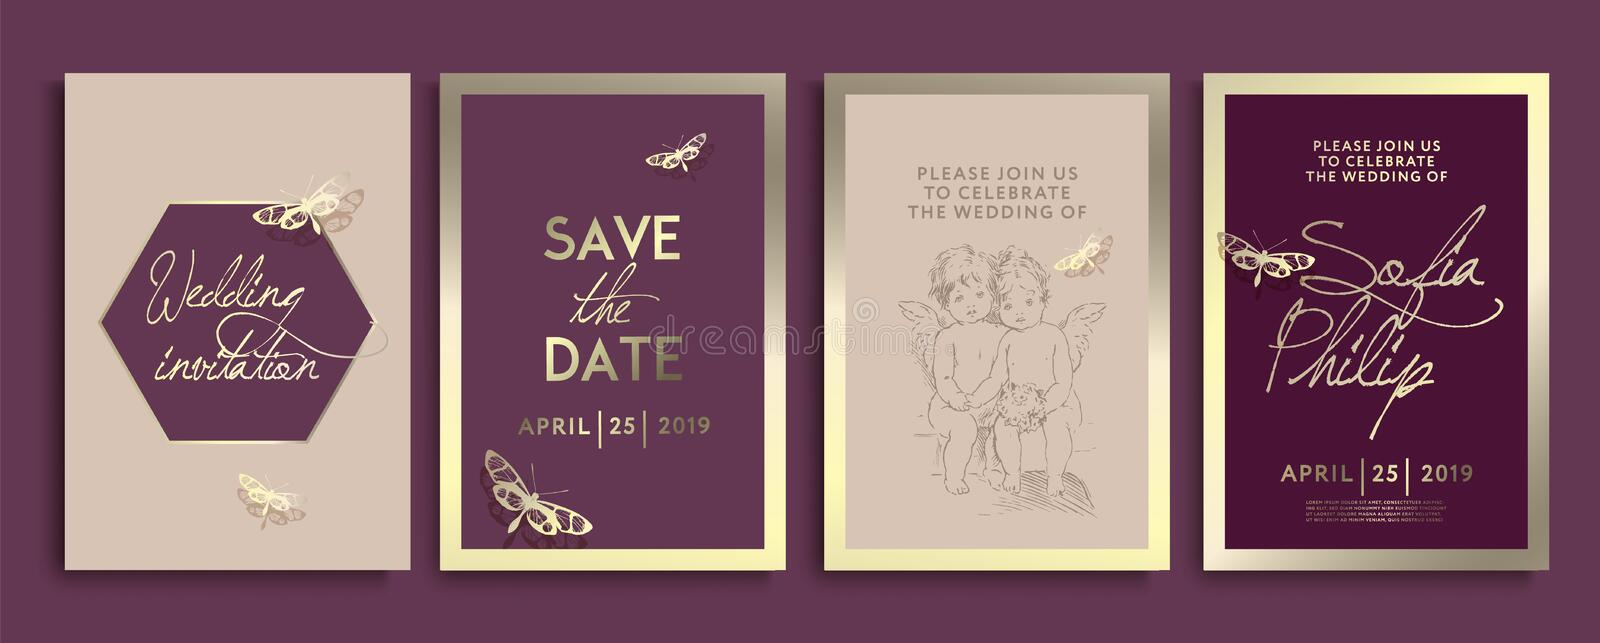 Wedding invitation with flowers, angels and butterflies on gold texture. luxury wedding card on gold backgrounds, artistic covers vector illustration